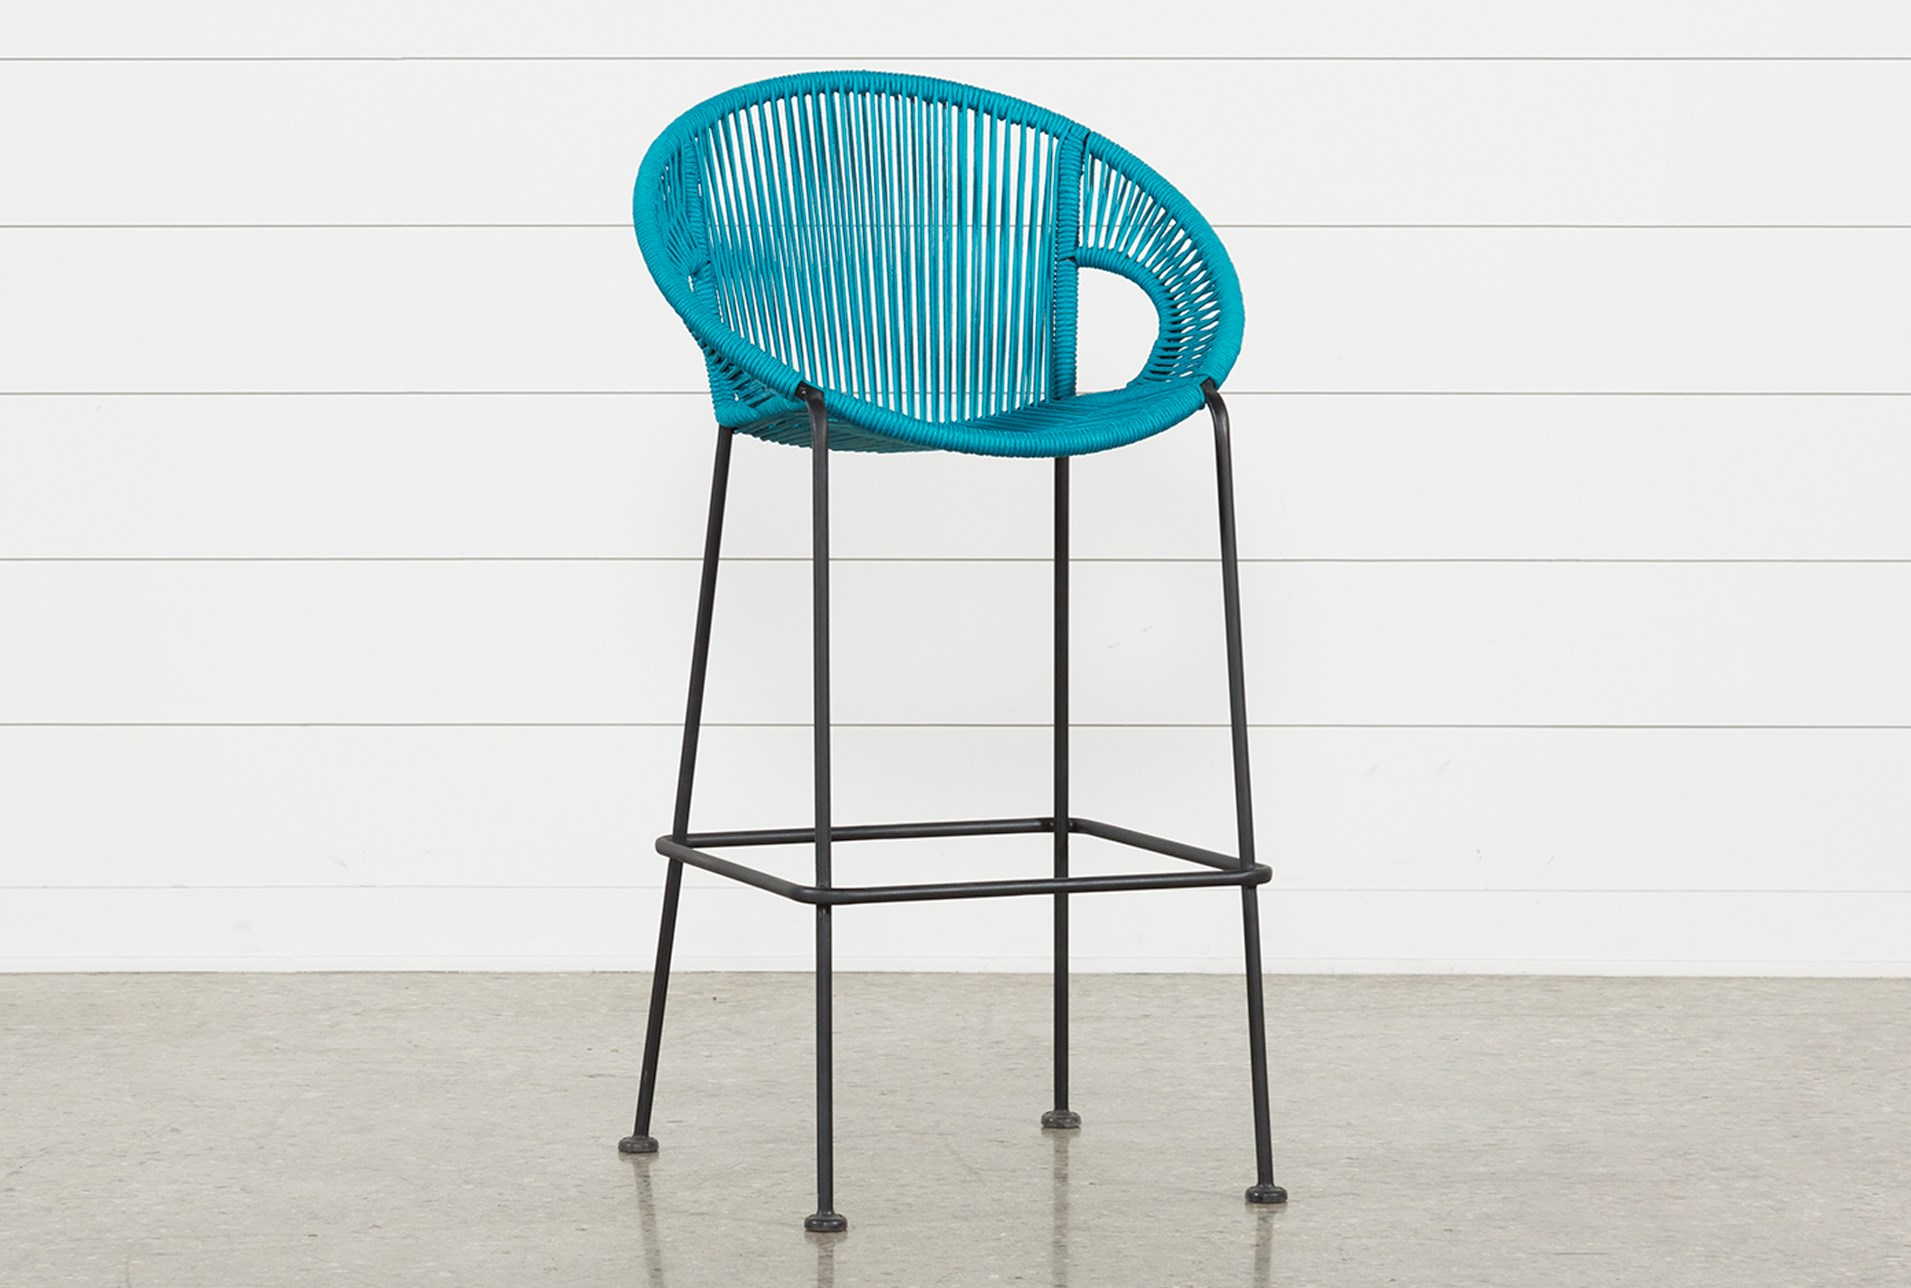 Outdoor Acapulco Turquoise Rope Bar Stool Qty 1 Has Been Successfully Added To Your Cart